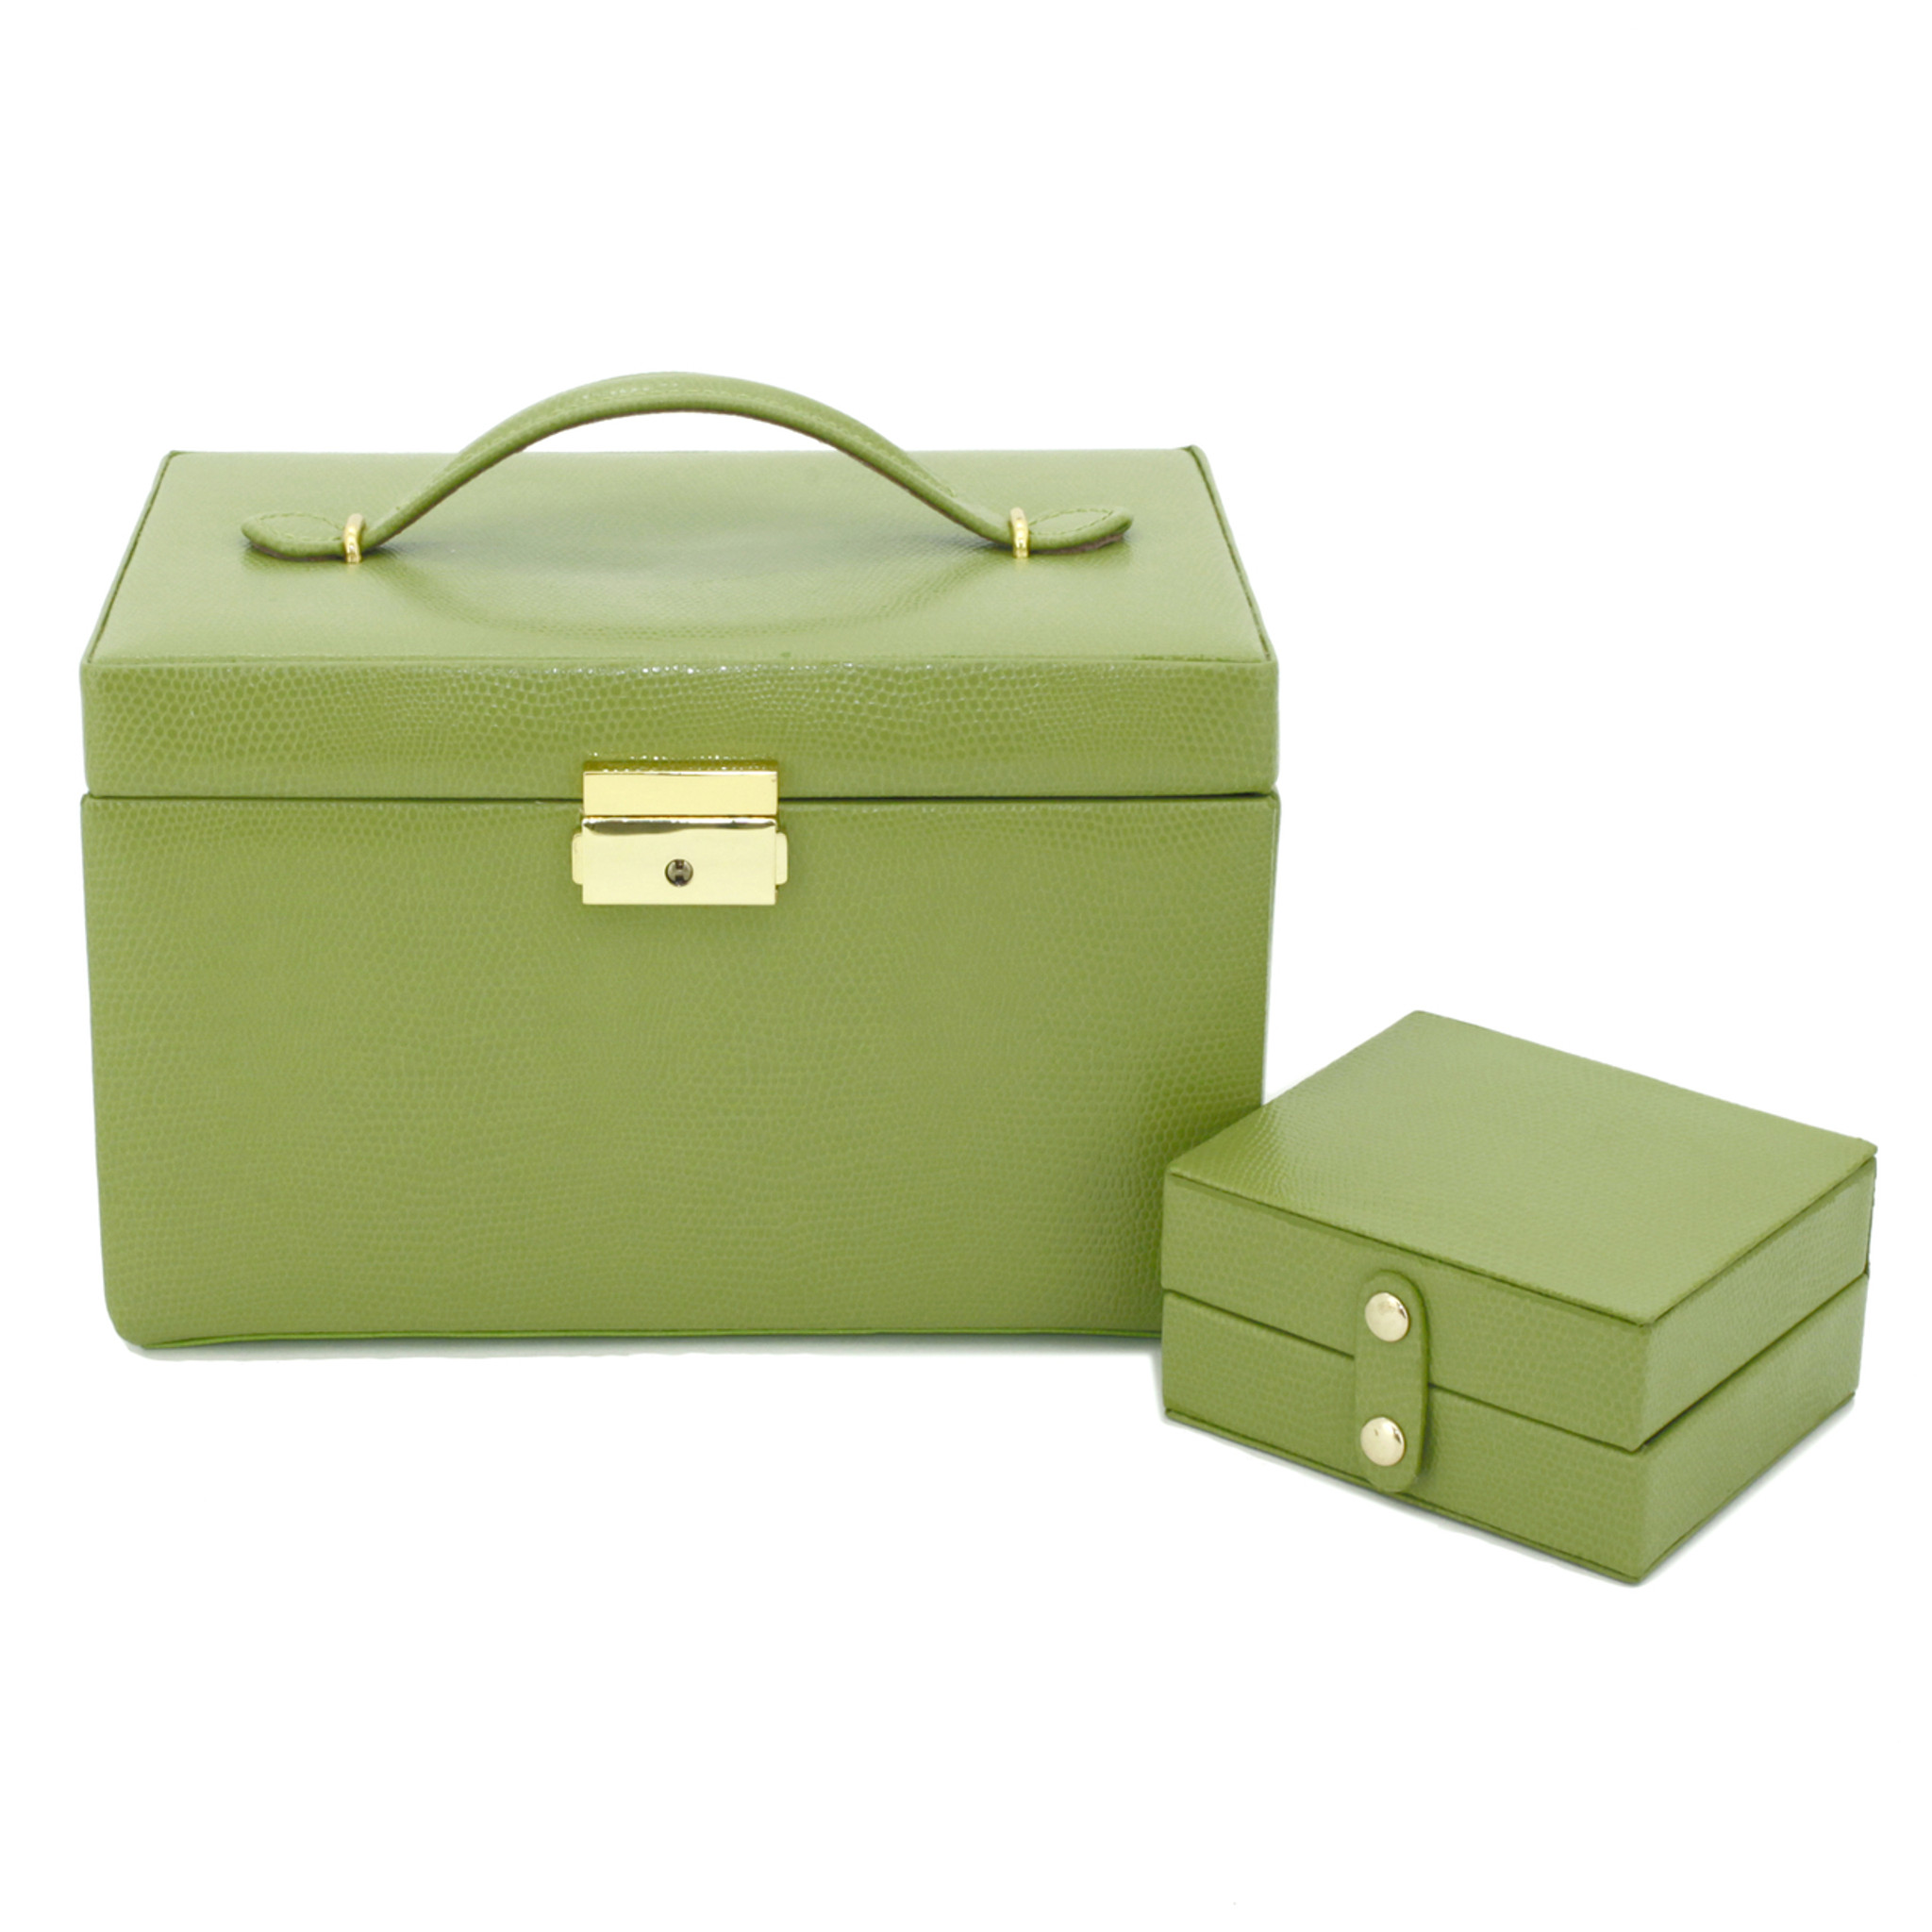 GREEN LEATHER JEWELLERY BOX SUITABLE FOR NECKLACE